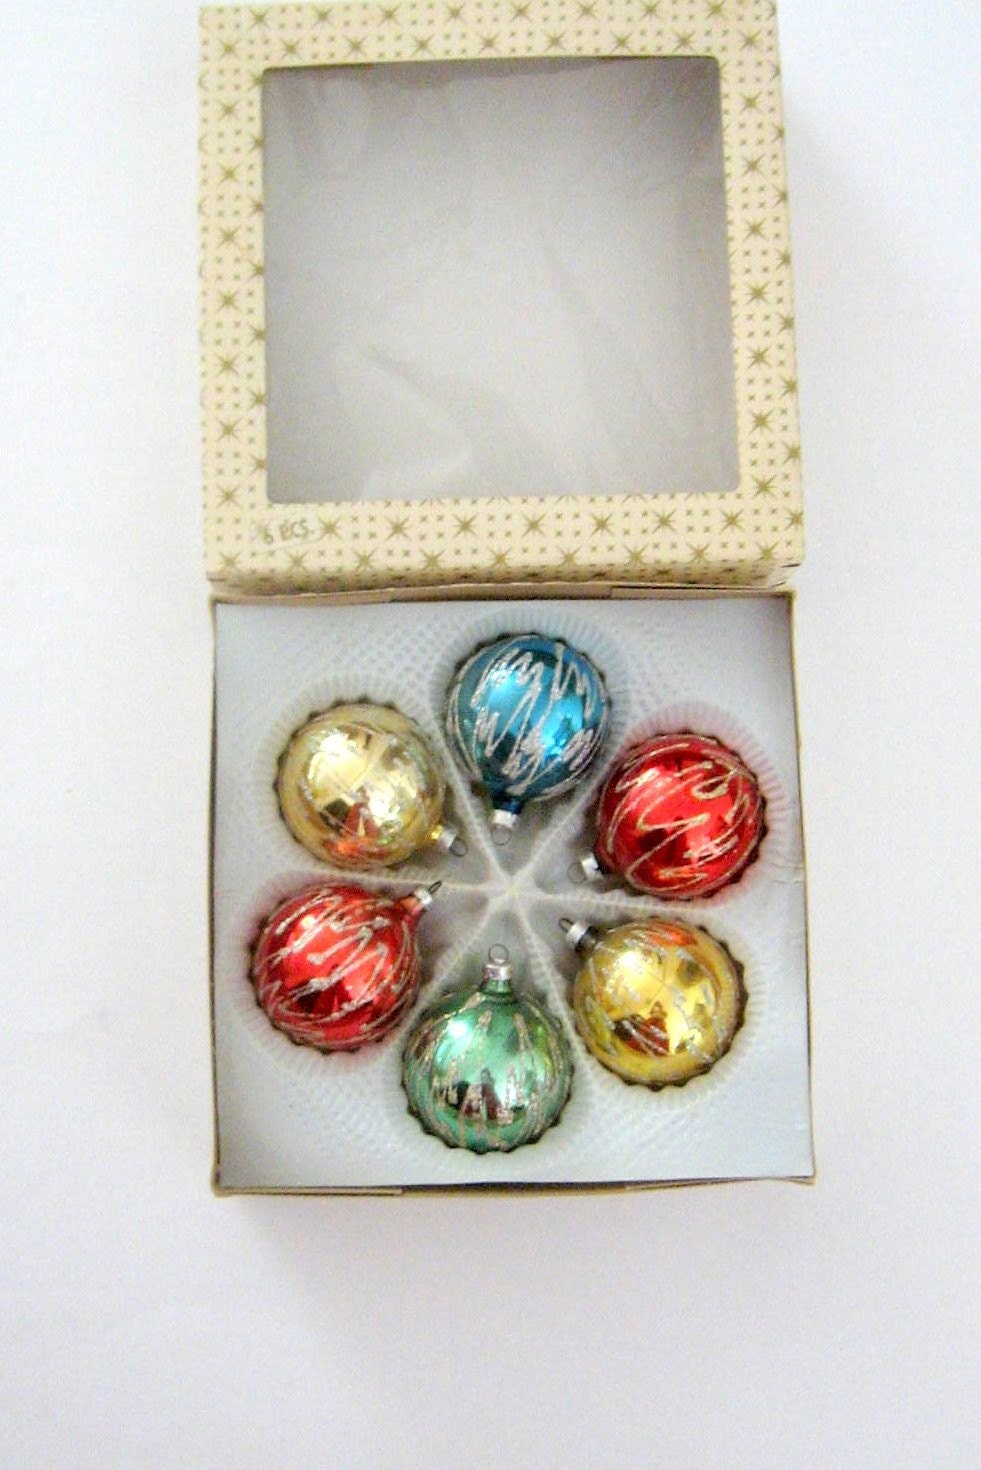 SALE-1950s Xmas Ornaments - W Germany Glass